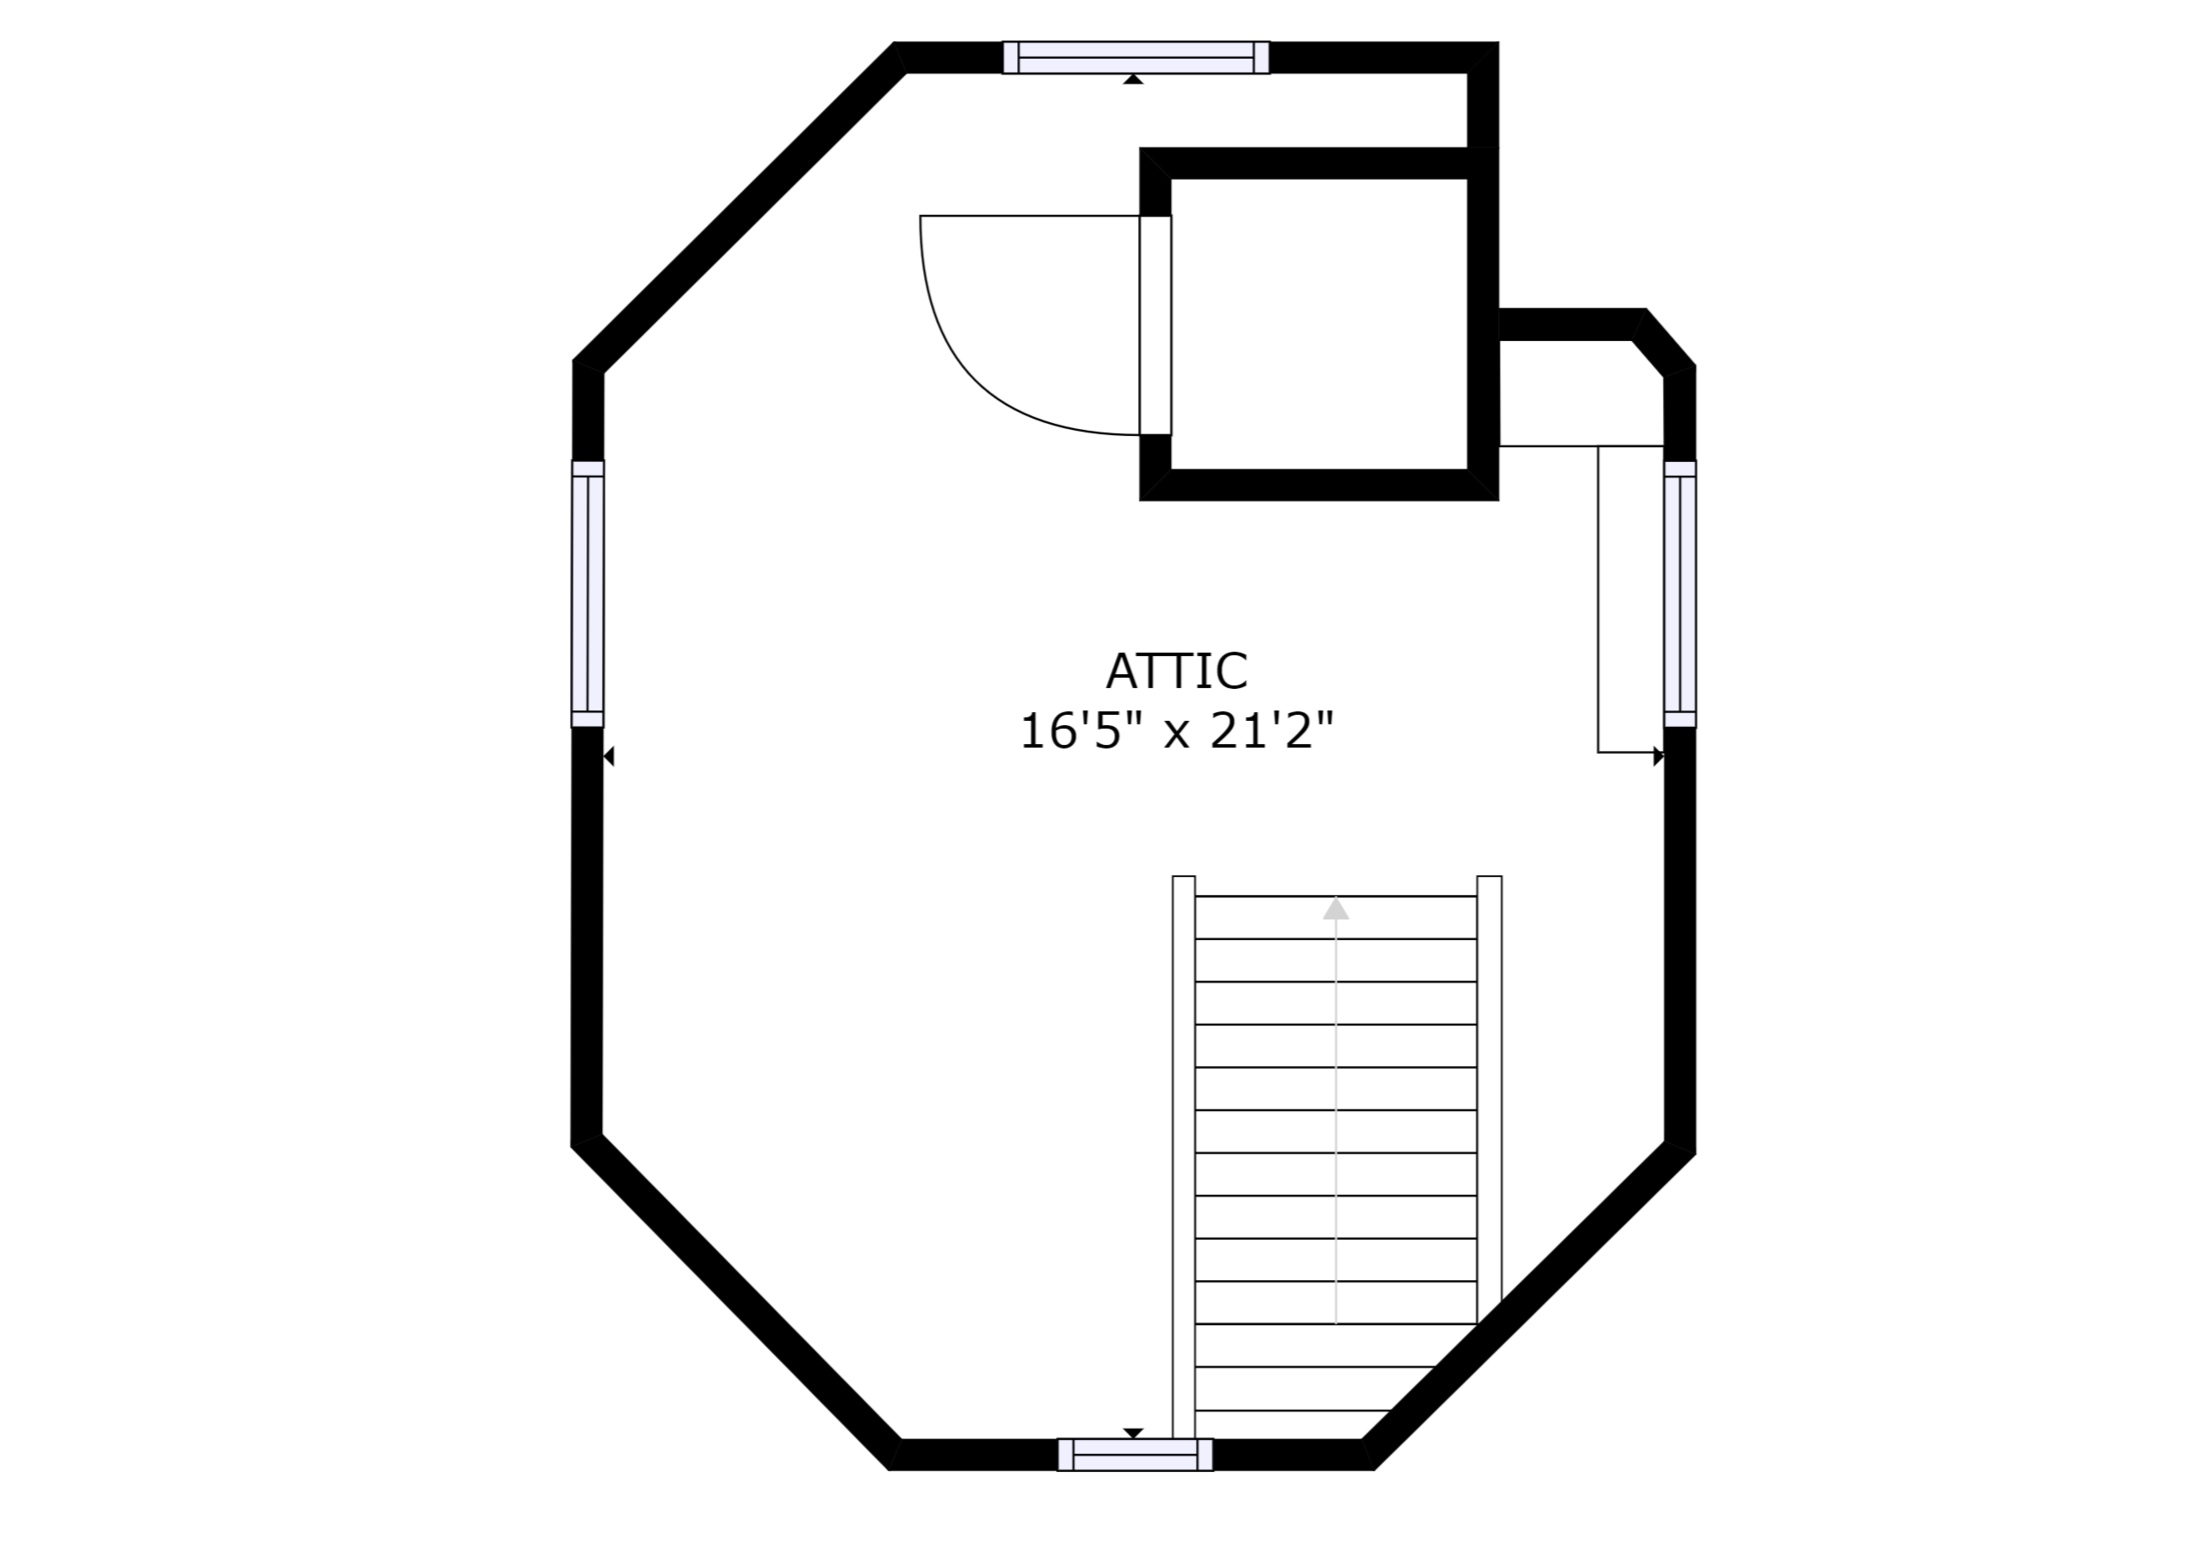 Third Floor: Upper Room – sizes and dimensions are approximate. Actual may vary.